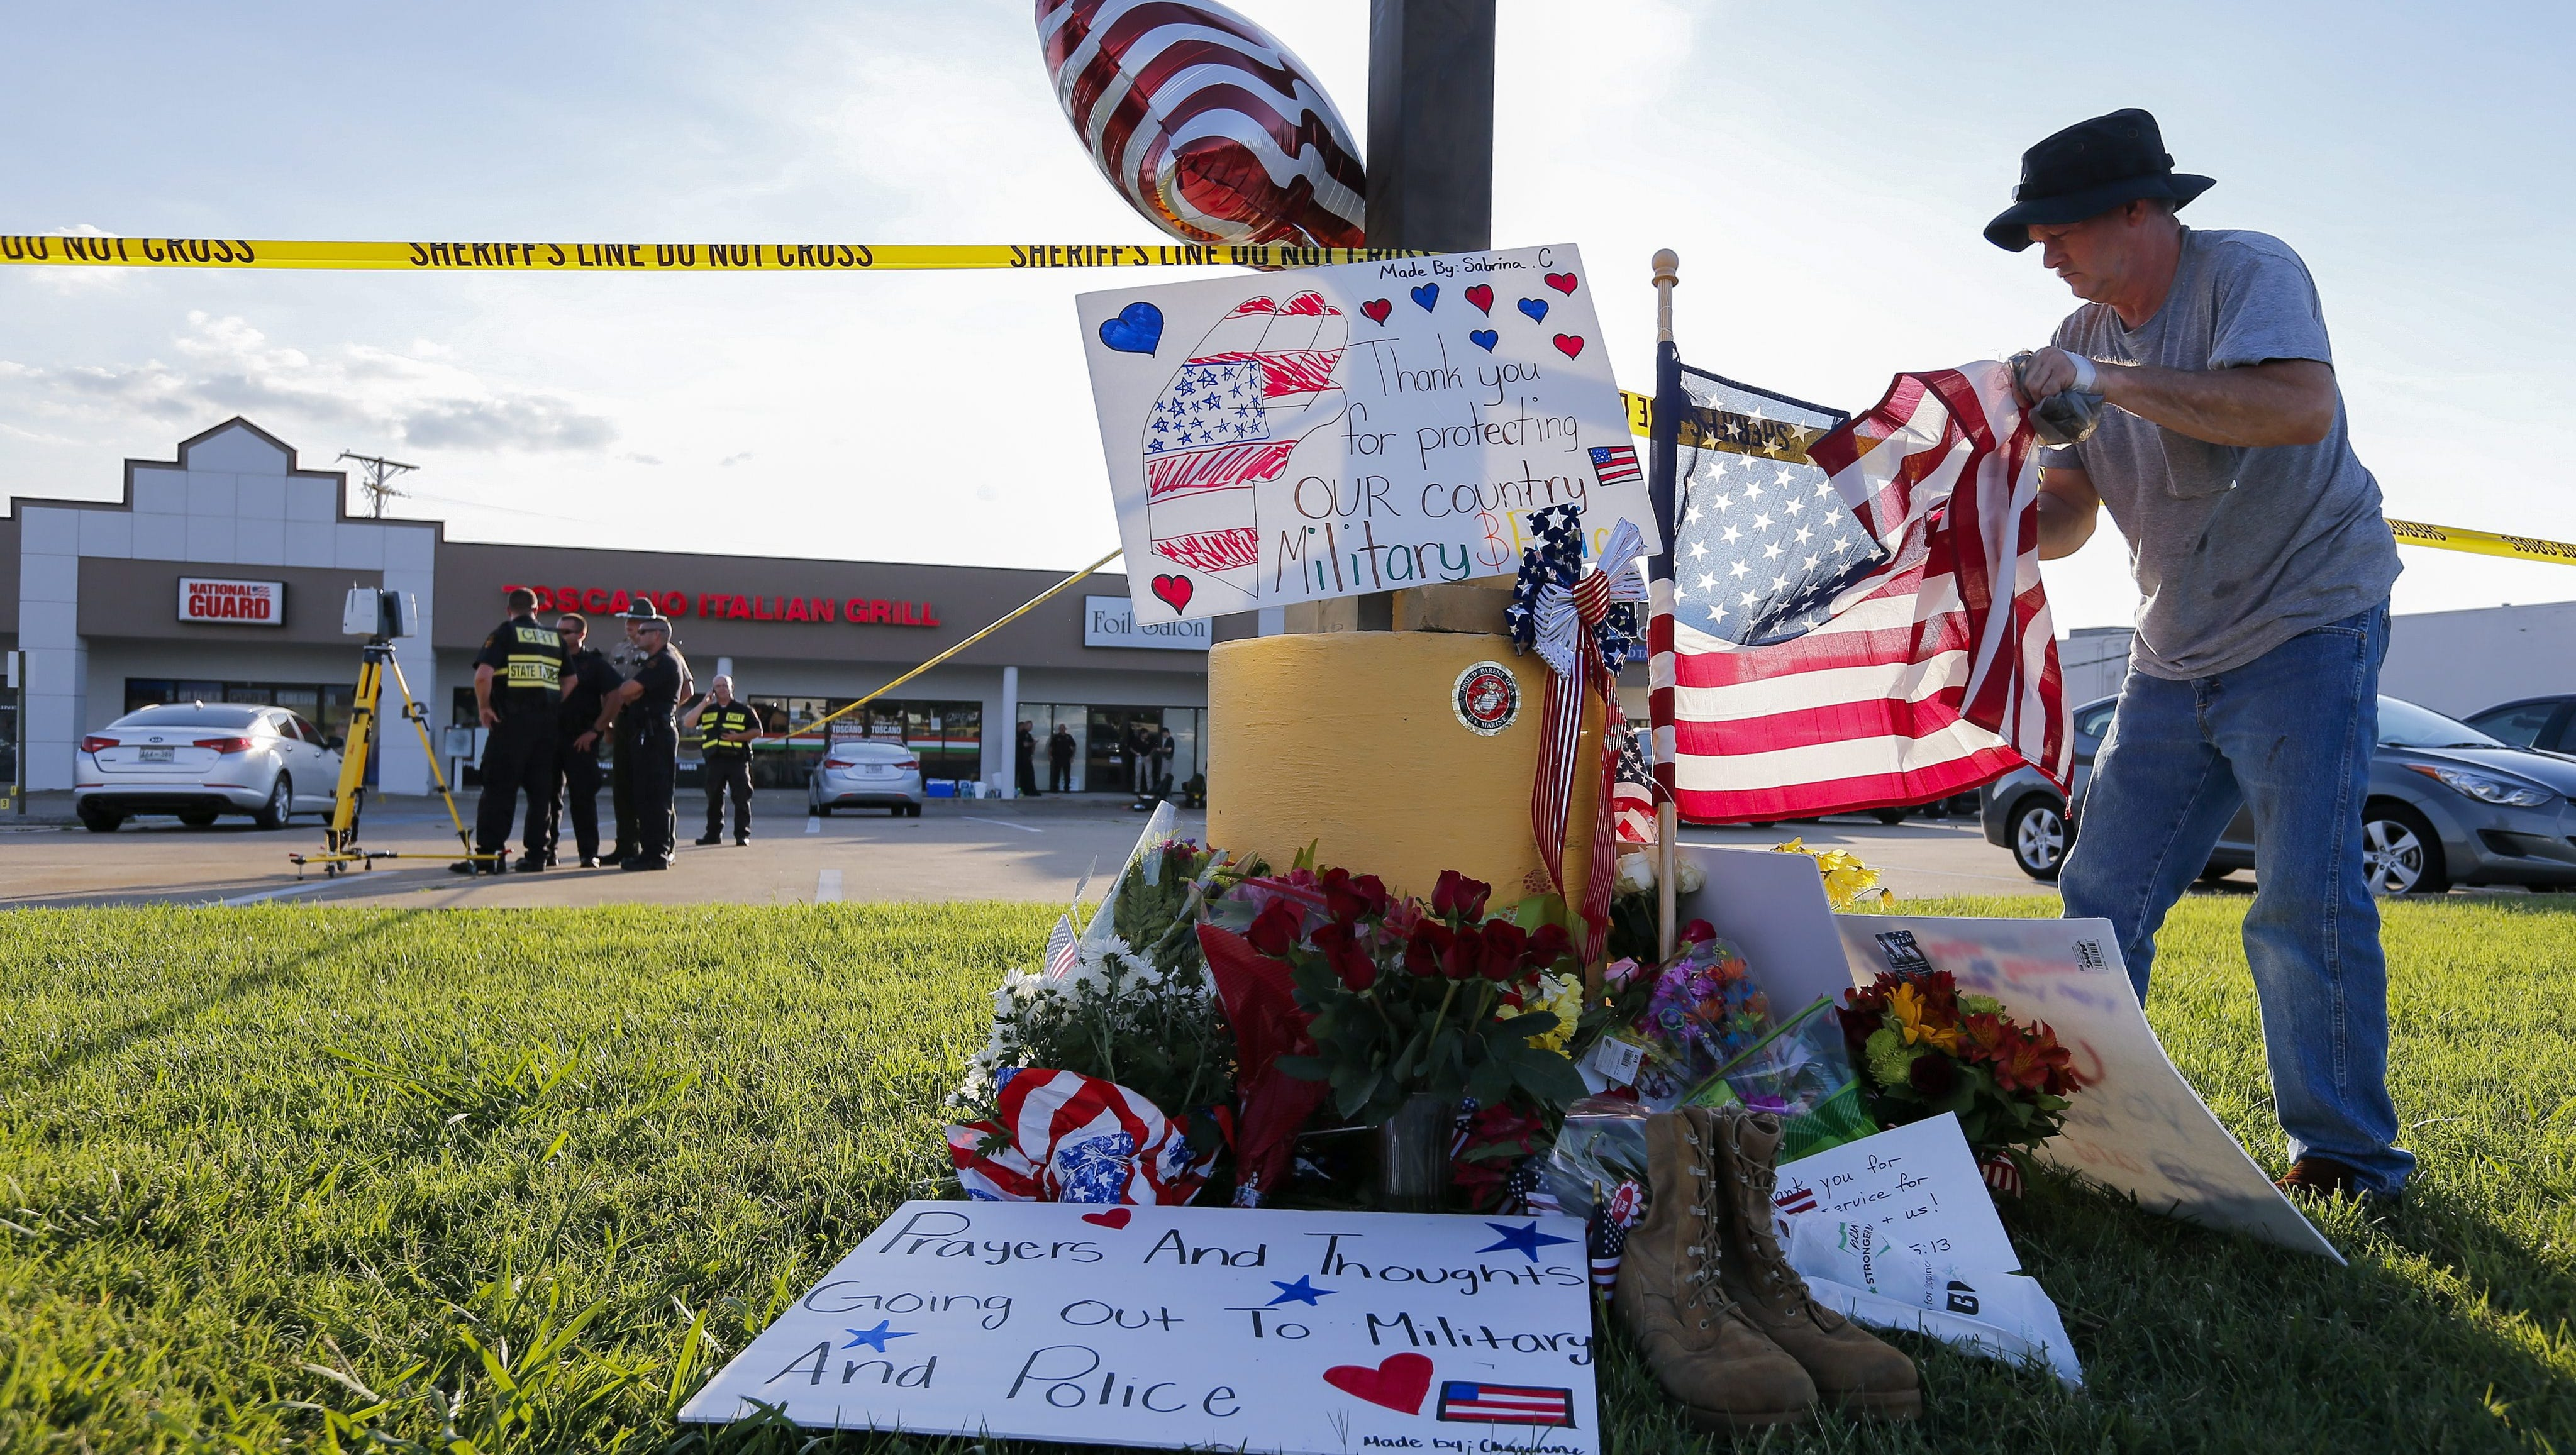 fbi expects to have presence for days after chattanooga